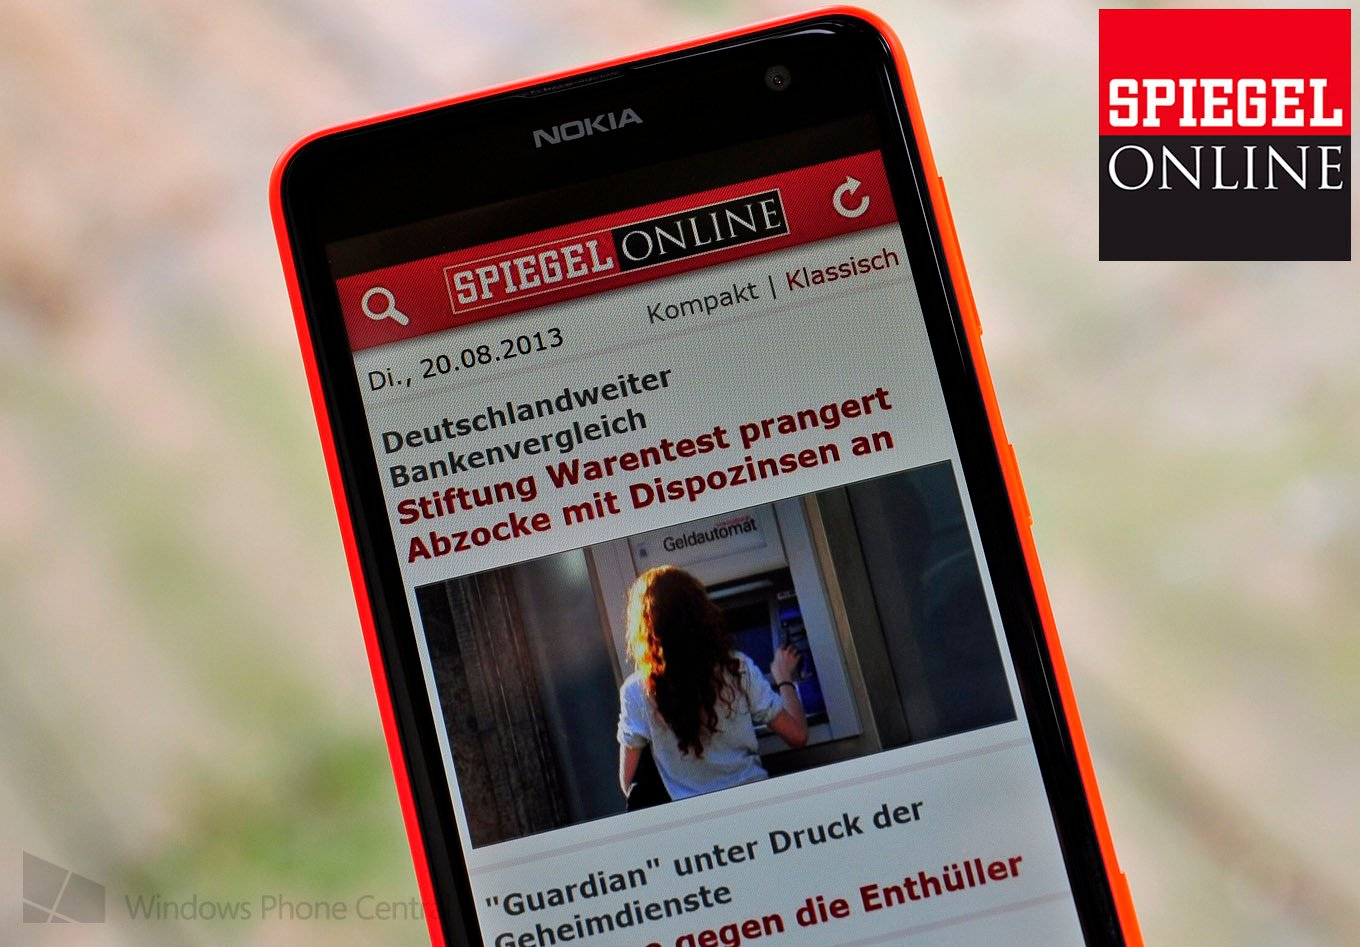 Spiehgel Online Spiegel Online Launches Official German Language App For Windows